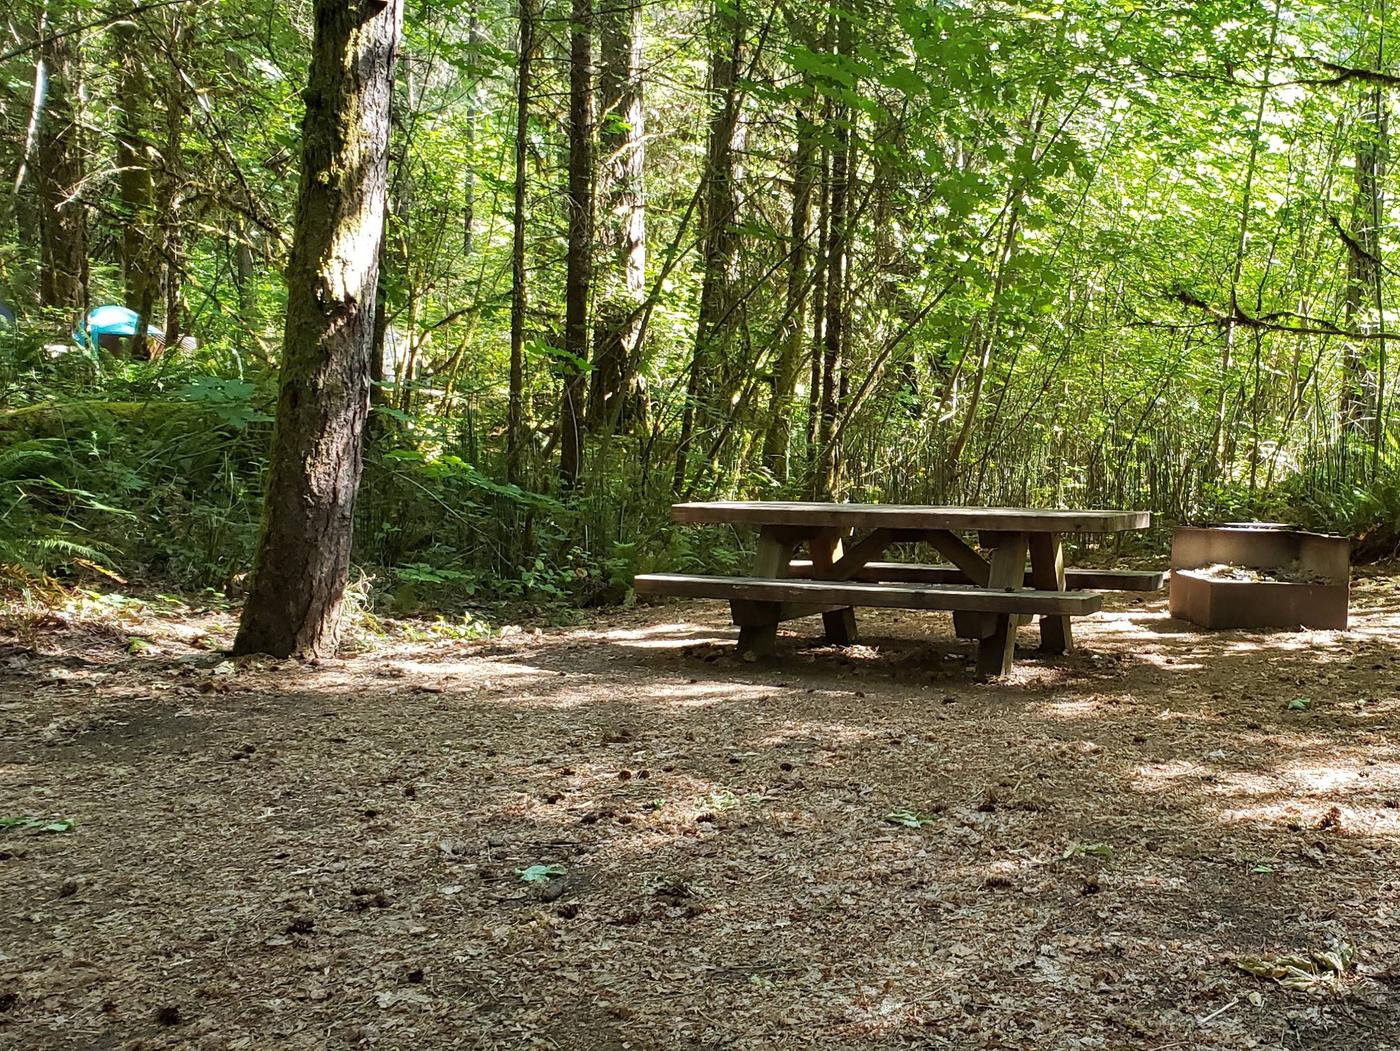 Flat campsite with one picnic table and fire ring.011